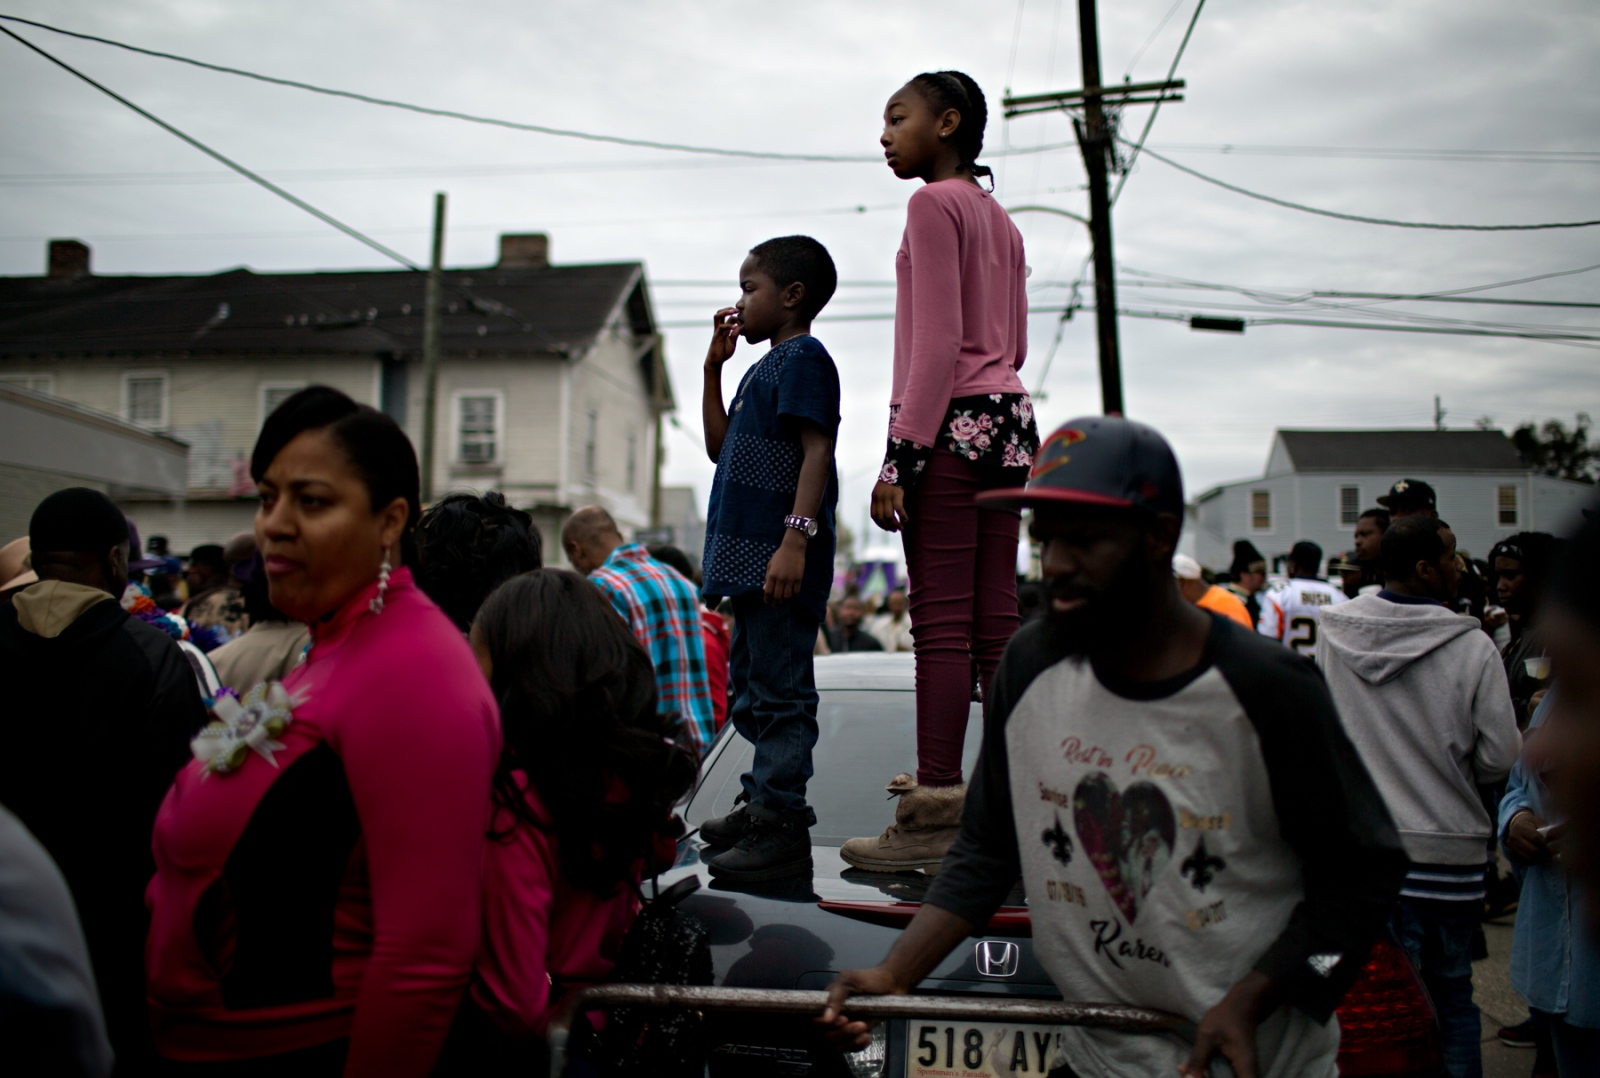 Two young participants and spectators watch the Second Line parade standing on top of a trunk of a car.